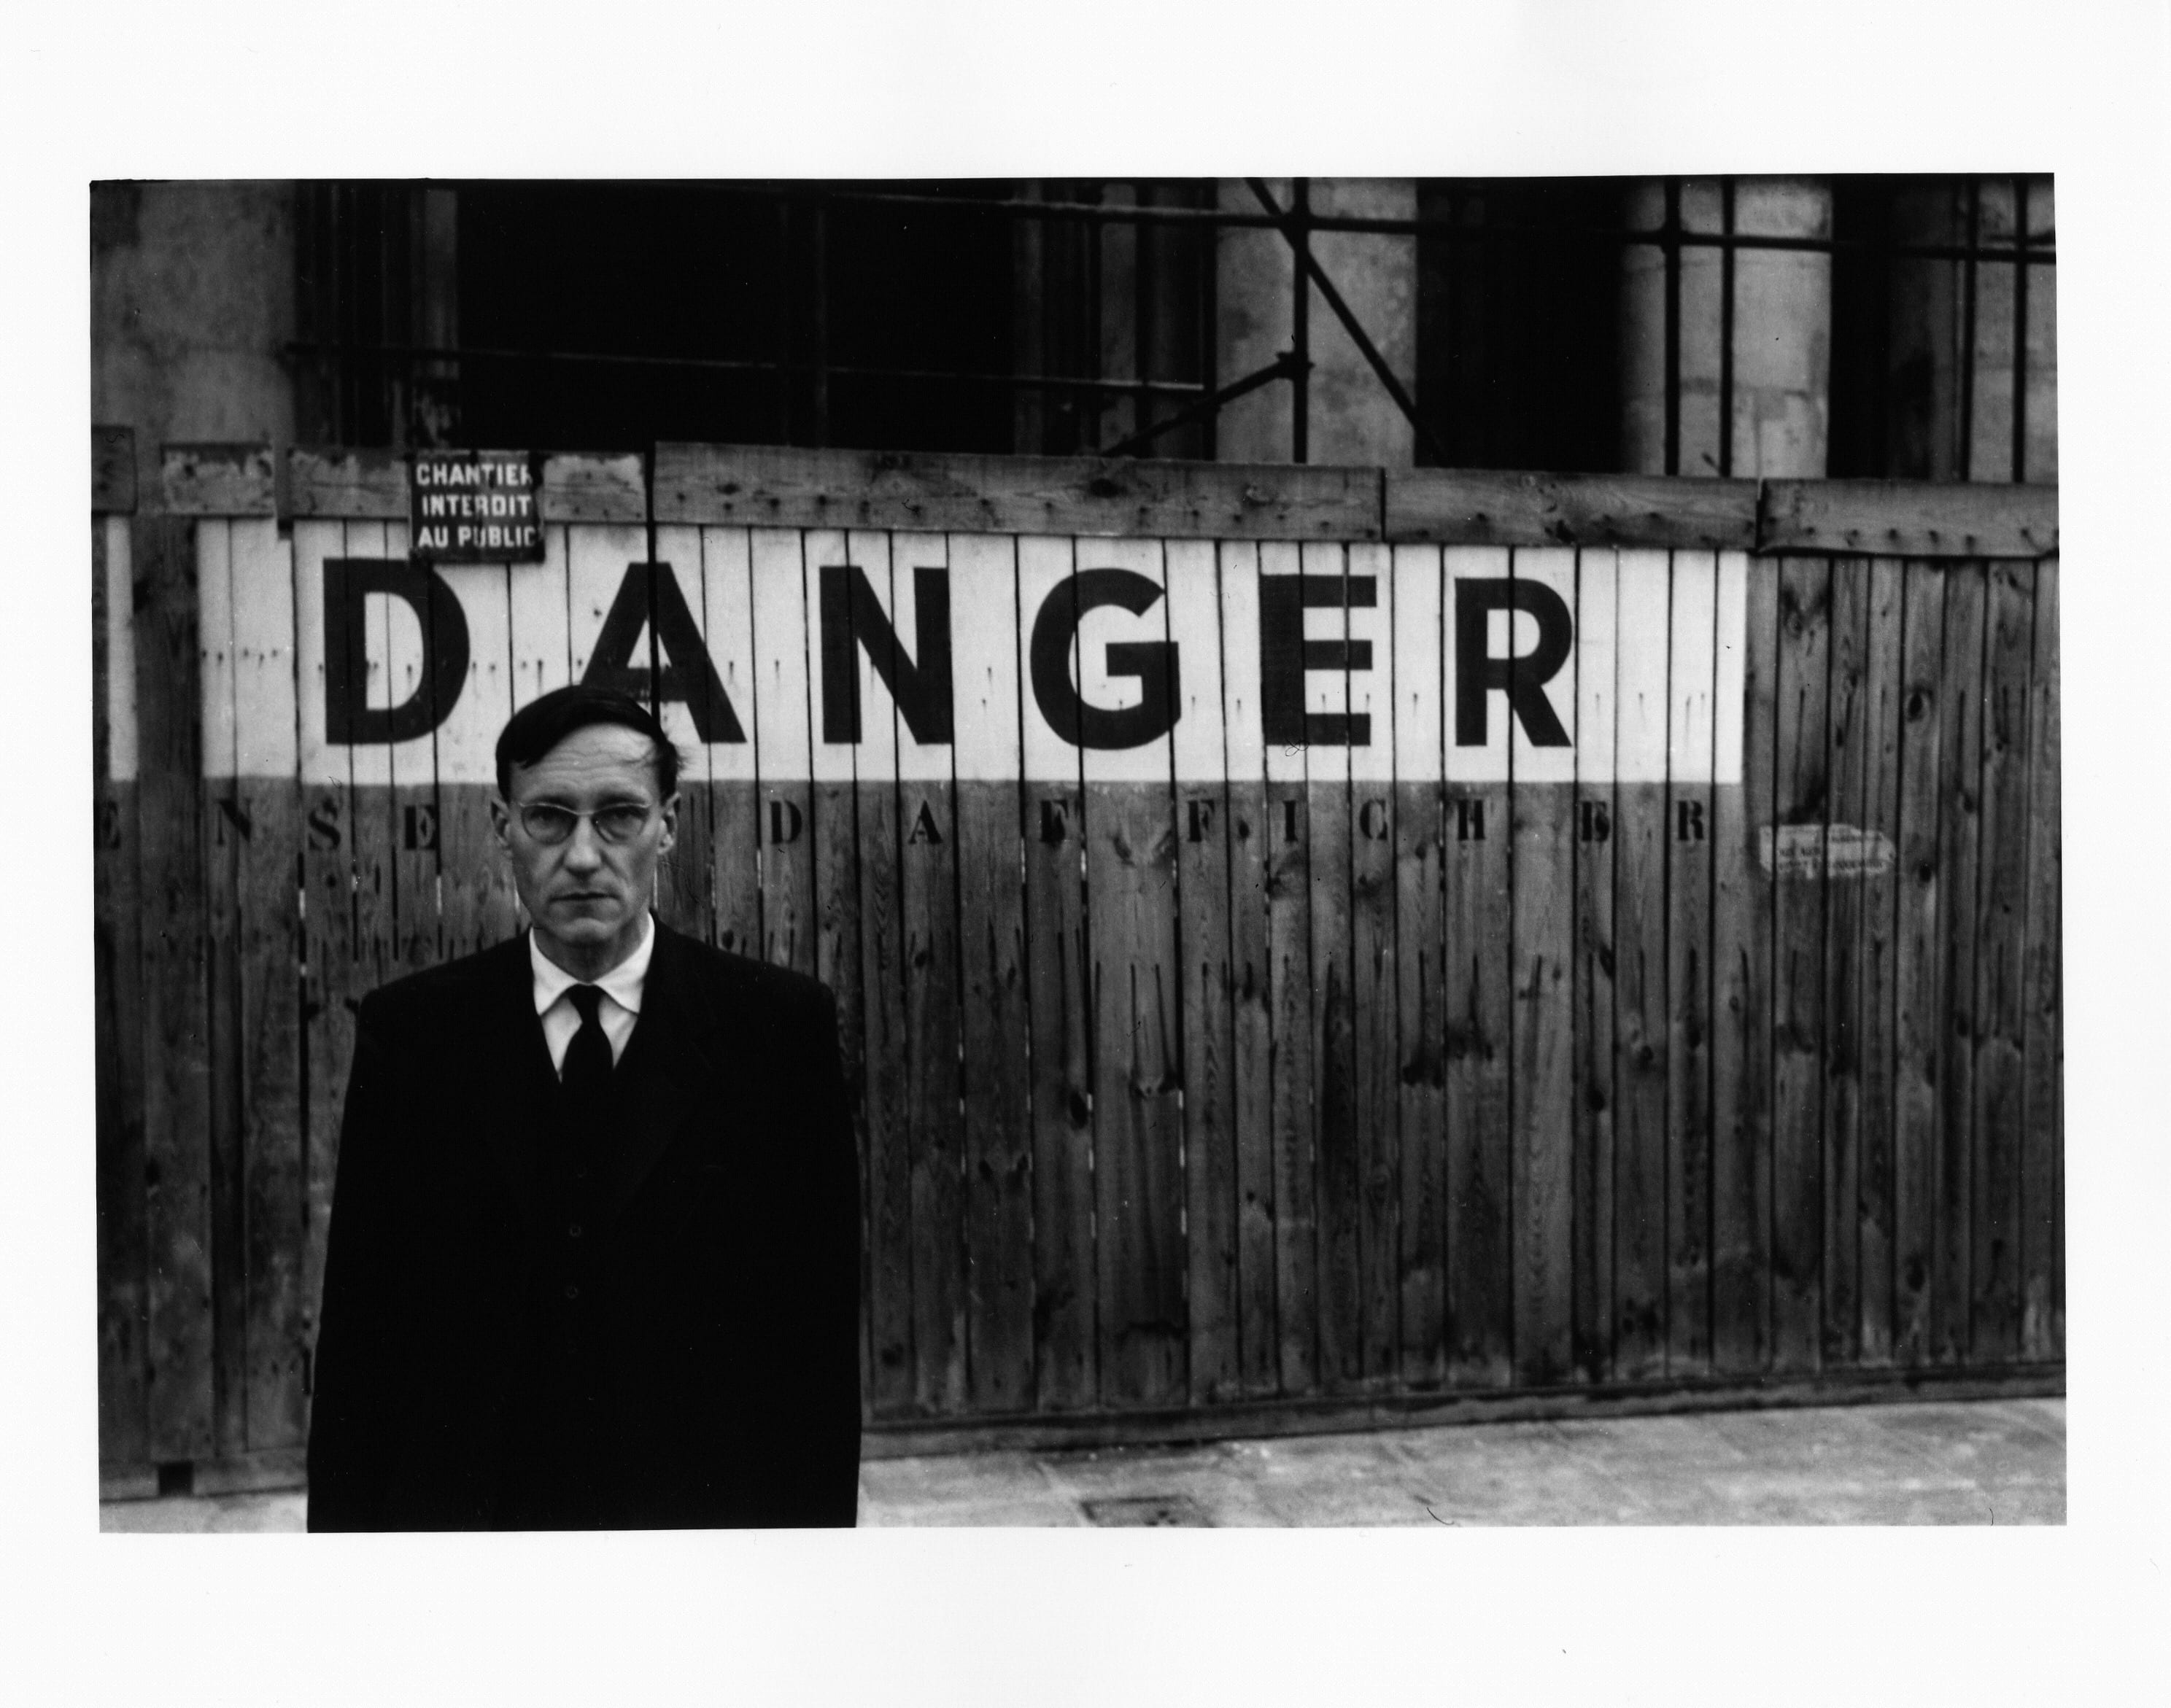 Naked lunch by william s burroughs Nude Photos 1